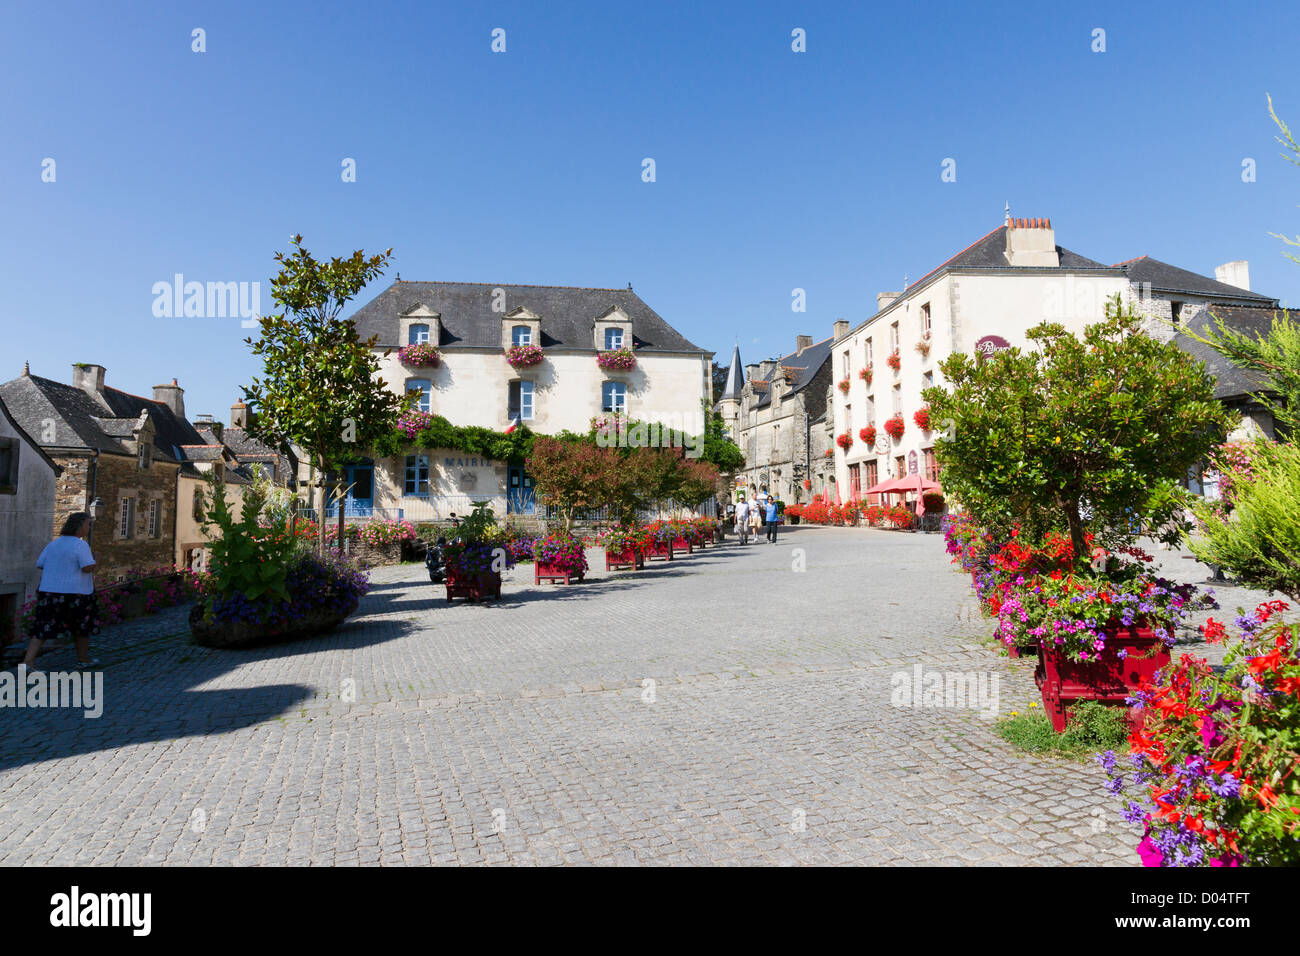 High above the River Arz, Rochefort-en-Terre has been voted one of France's most beautiful village. - Stock Image